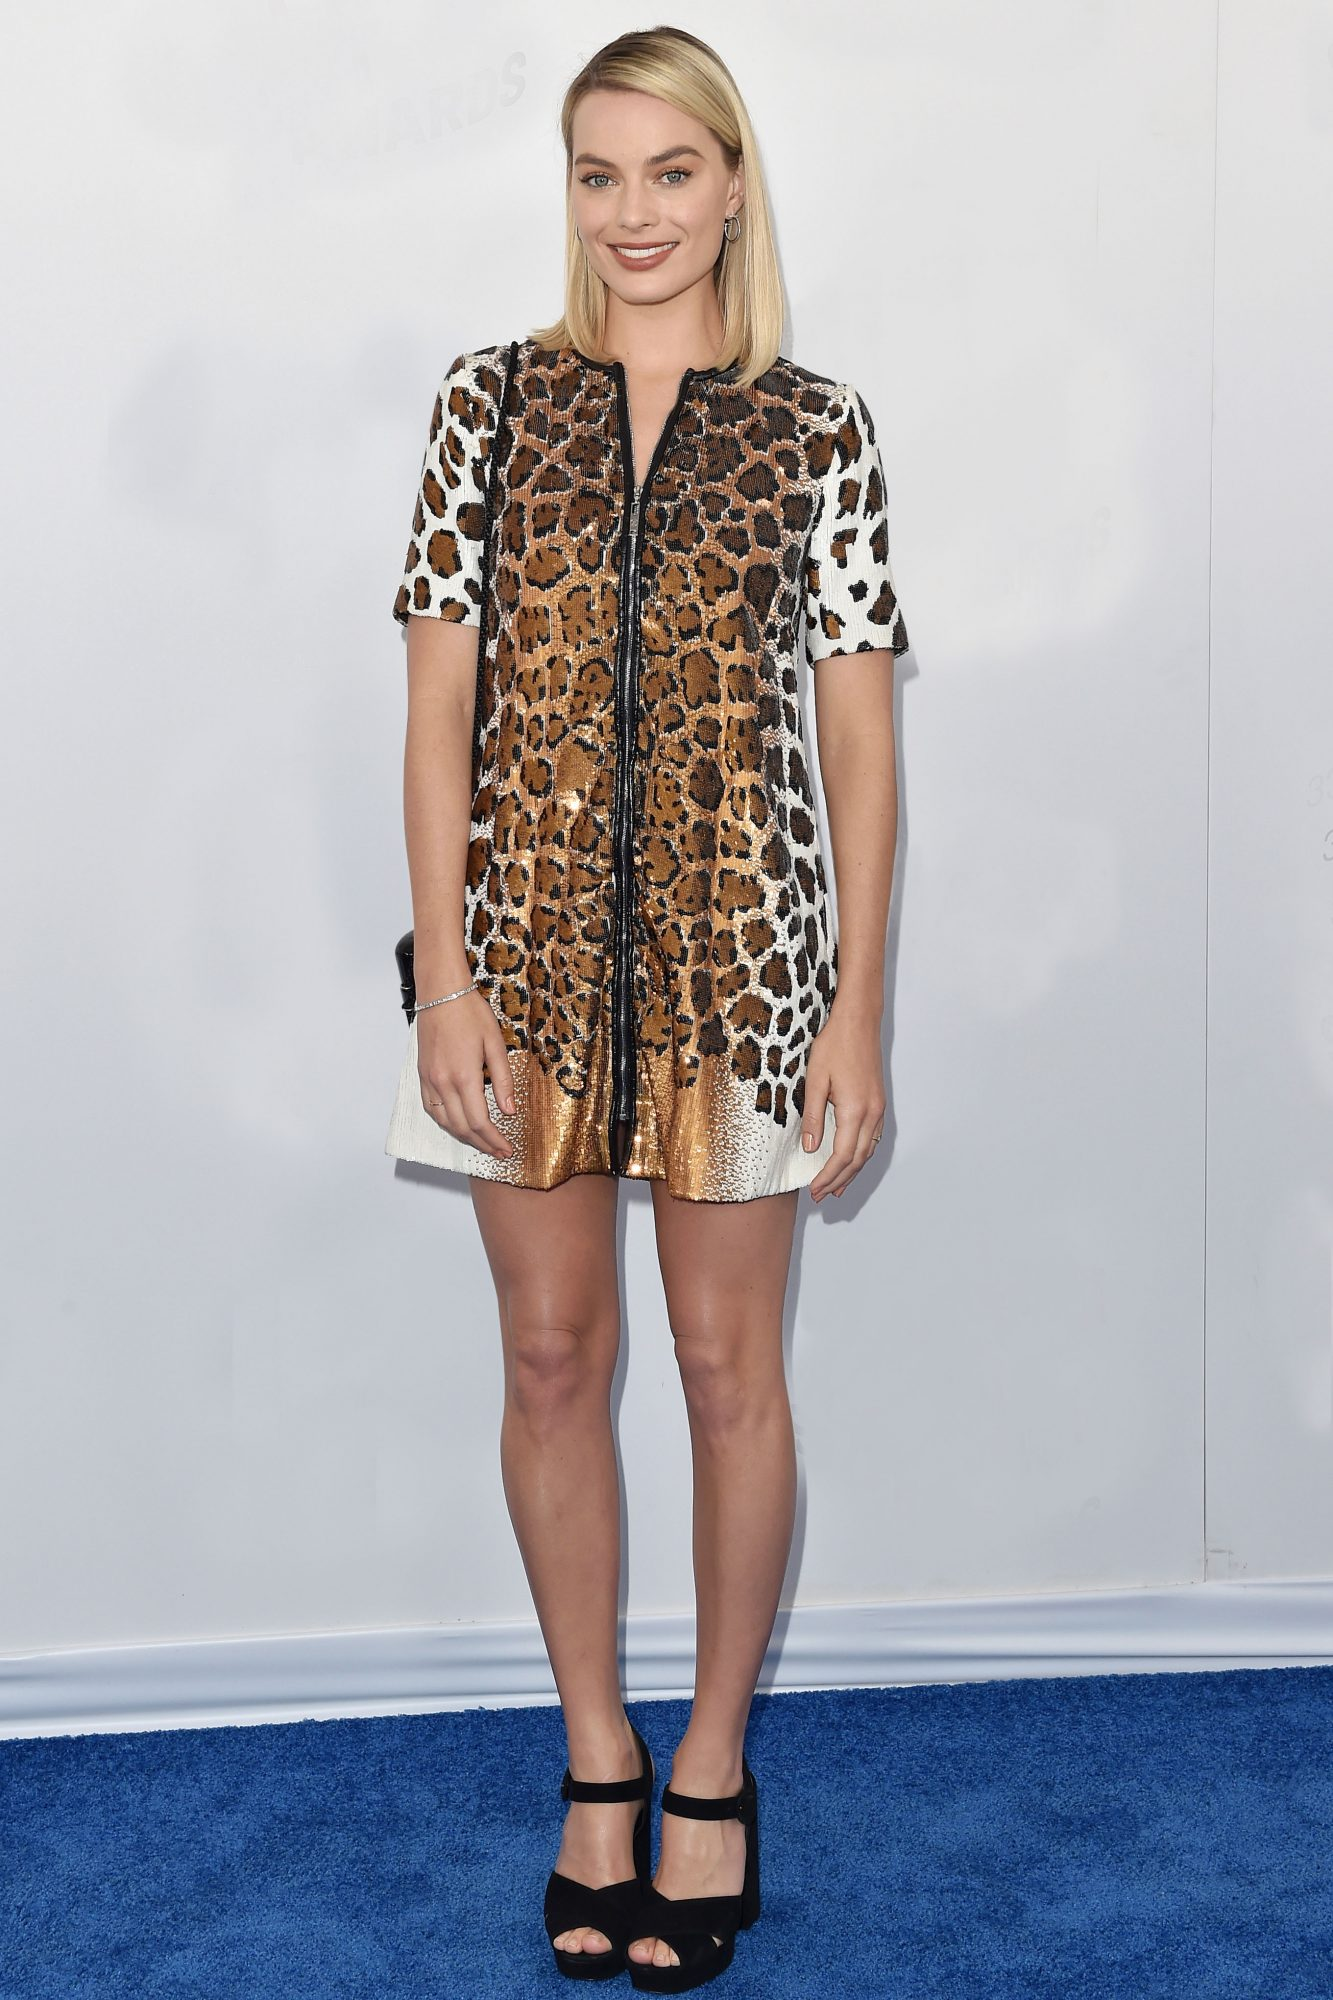 NOW TRENDING: ANIMAL PRINTS